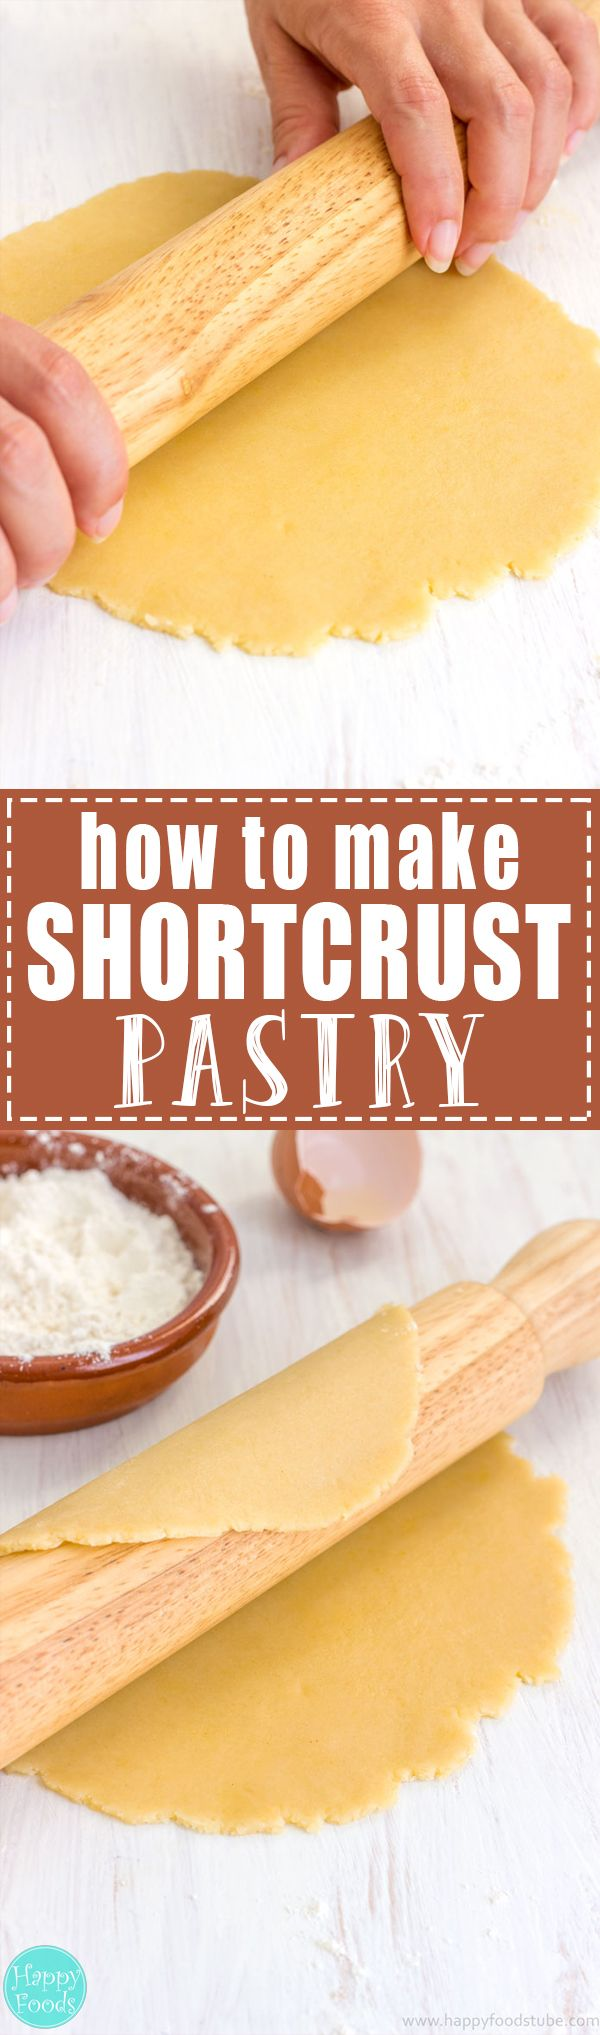 Best 25 how to make pastry ideas on pinterest simple for Shortcrust pastry ingredients